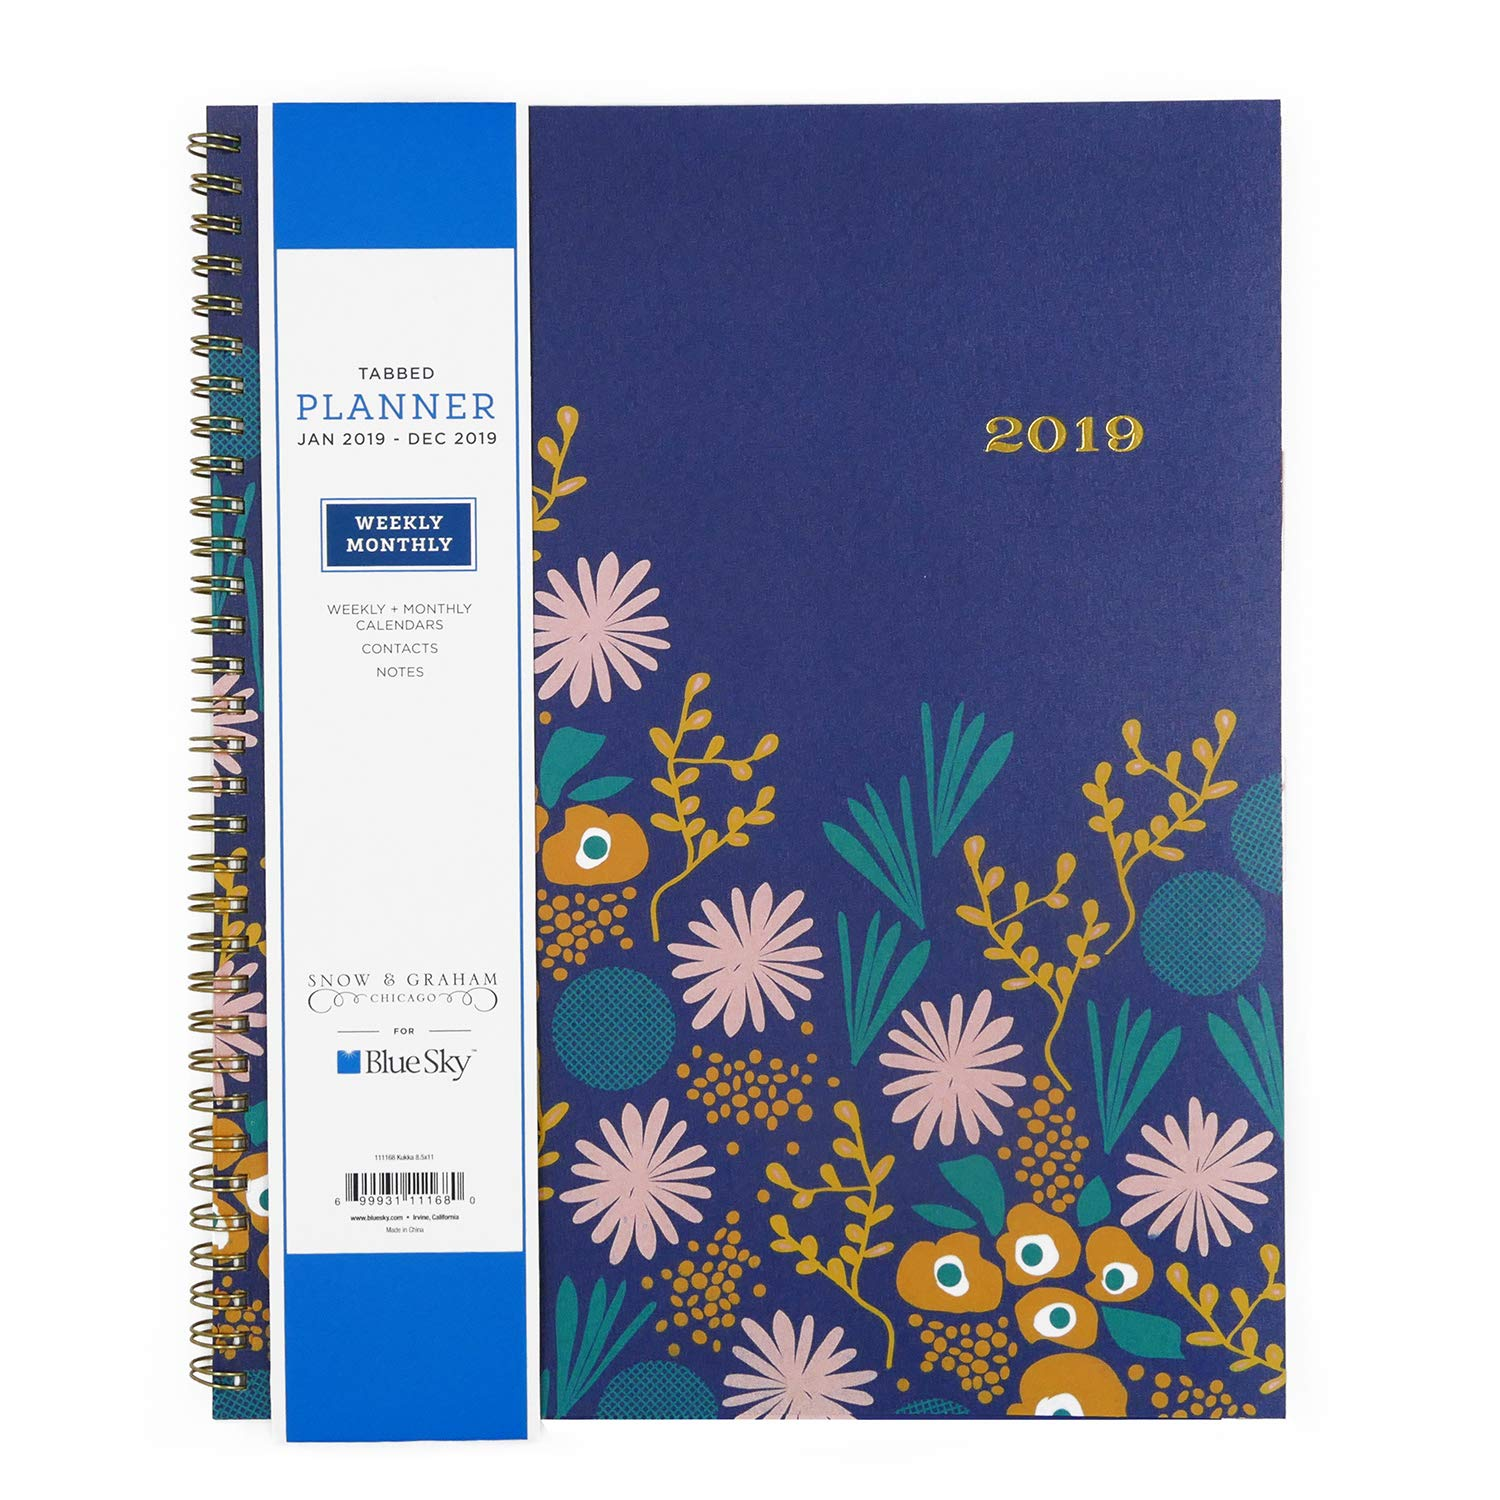 Blue Sky Snow & Graham for 2019 Weekly & Monthly Planner, Flexible Frosted Cover, Twin-Wire Binding, 8.5'' x 11'', Kukka (111168)